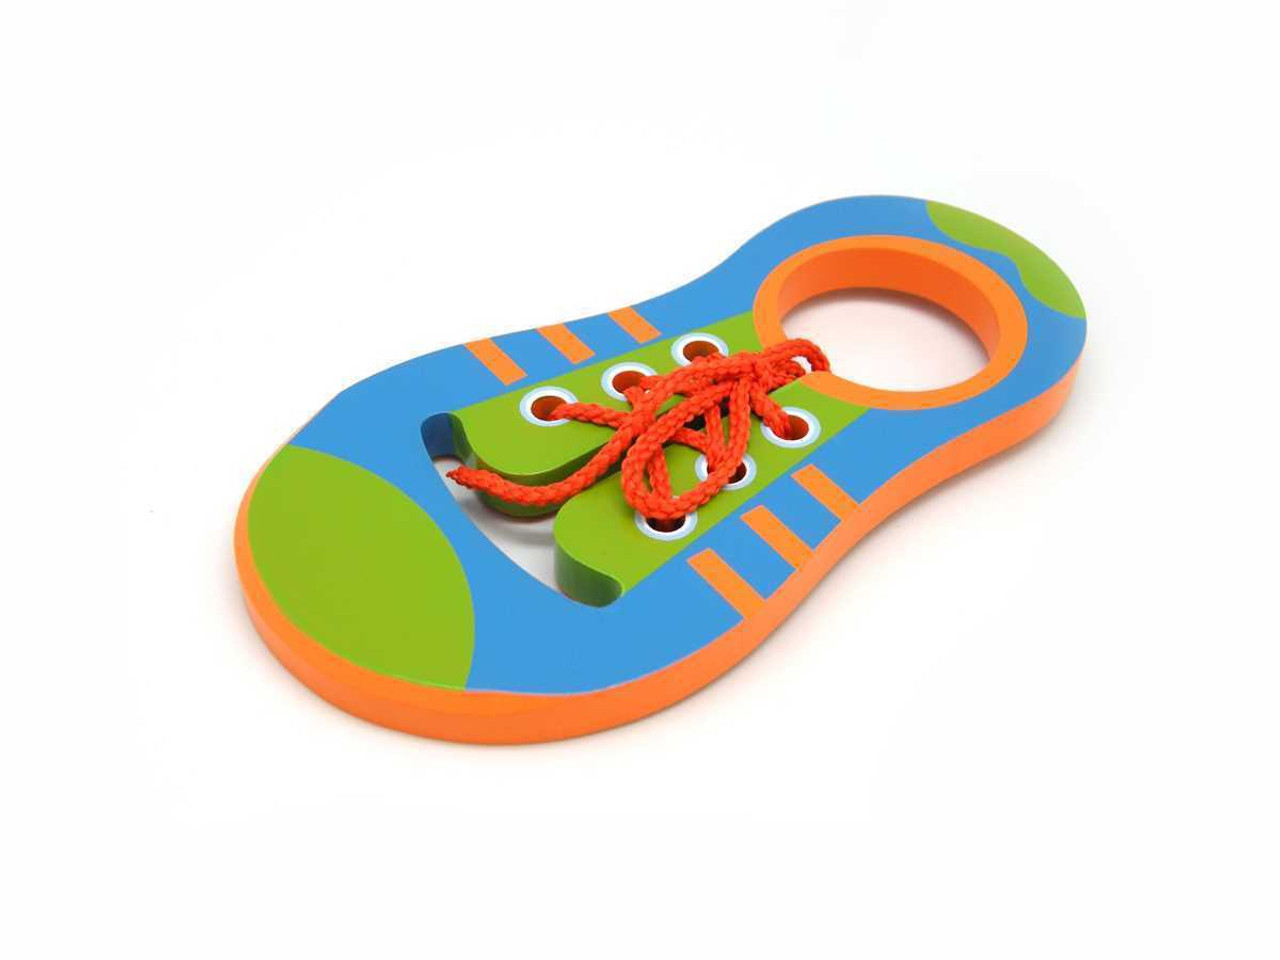 Kaper Kidz Wooden Learn to Tie Shoe Lace